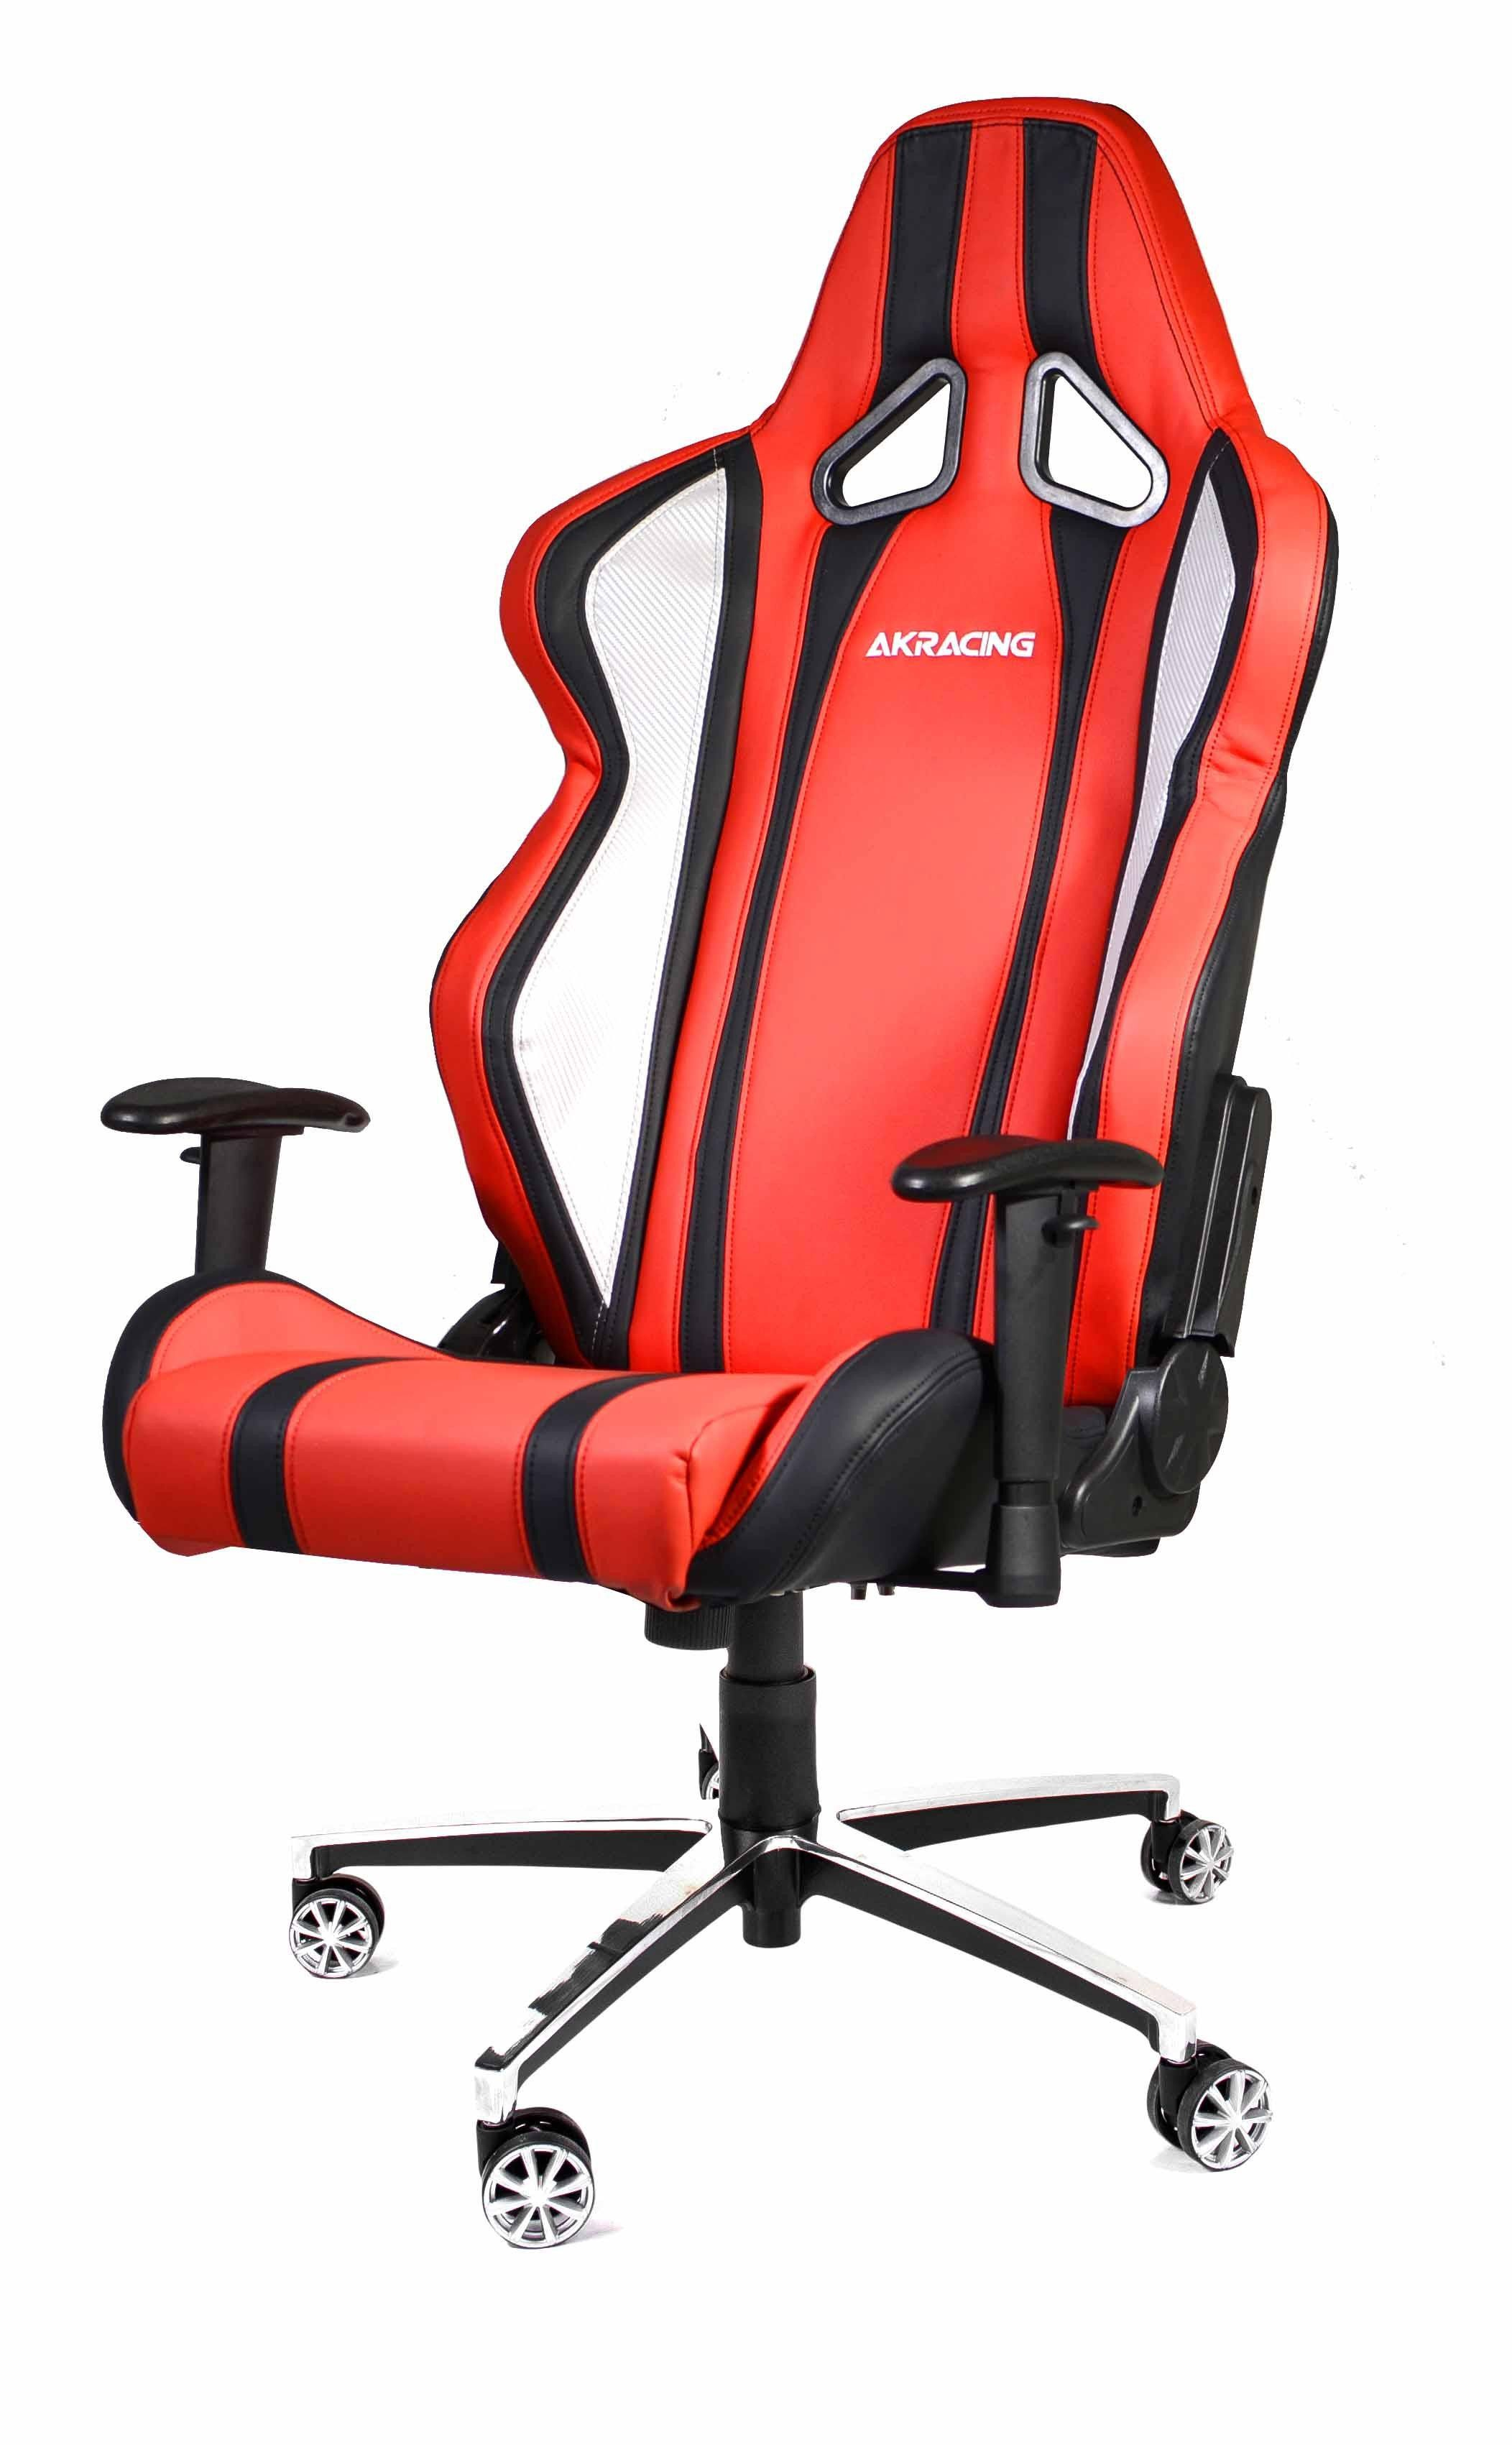 AKRACING Inferno Gaming Chair Silver Red WRGamers Akracing